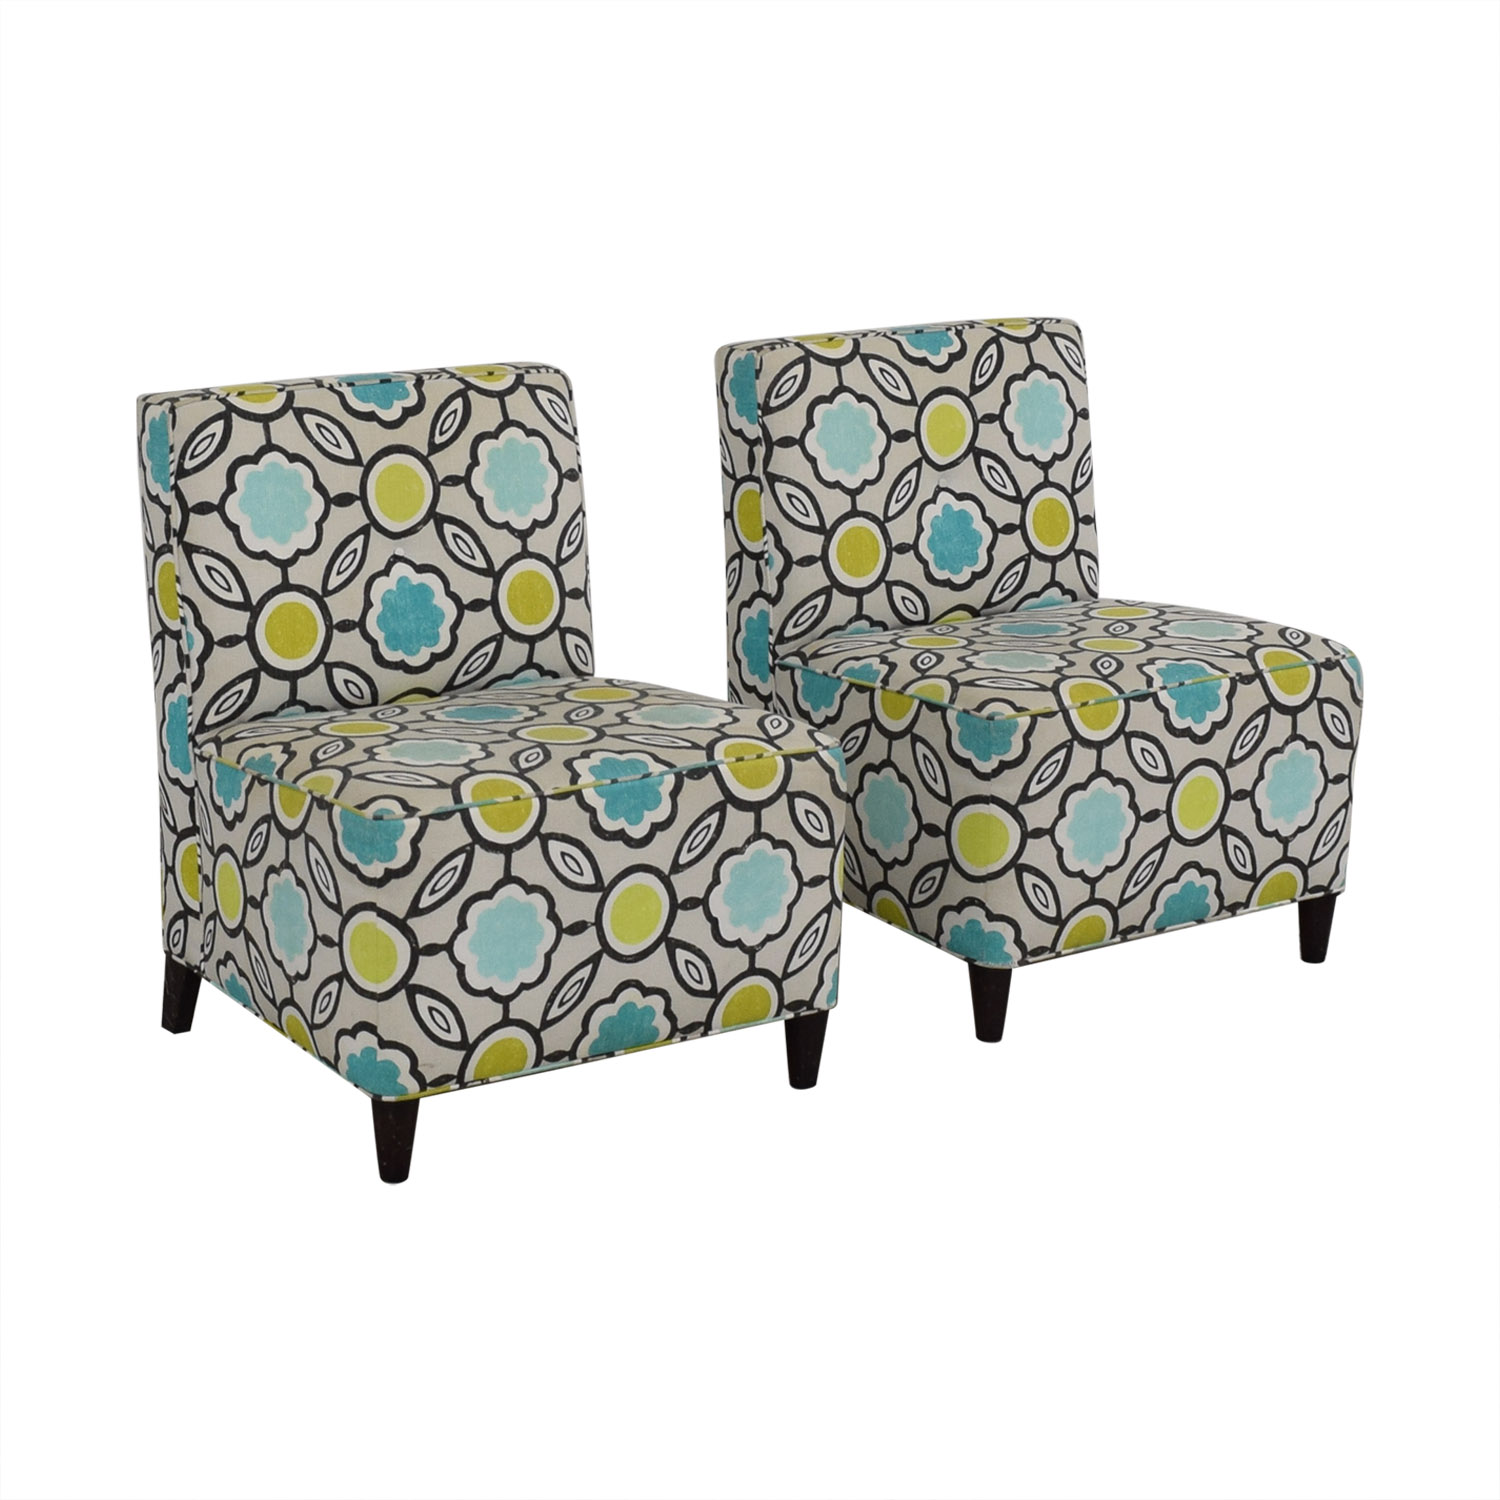 Stewart Furniture Stewart Furniture Armless Living Room Chairs nyc